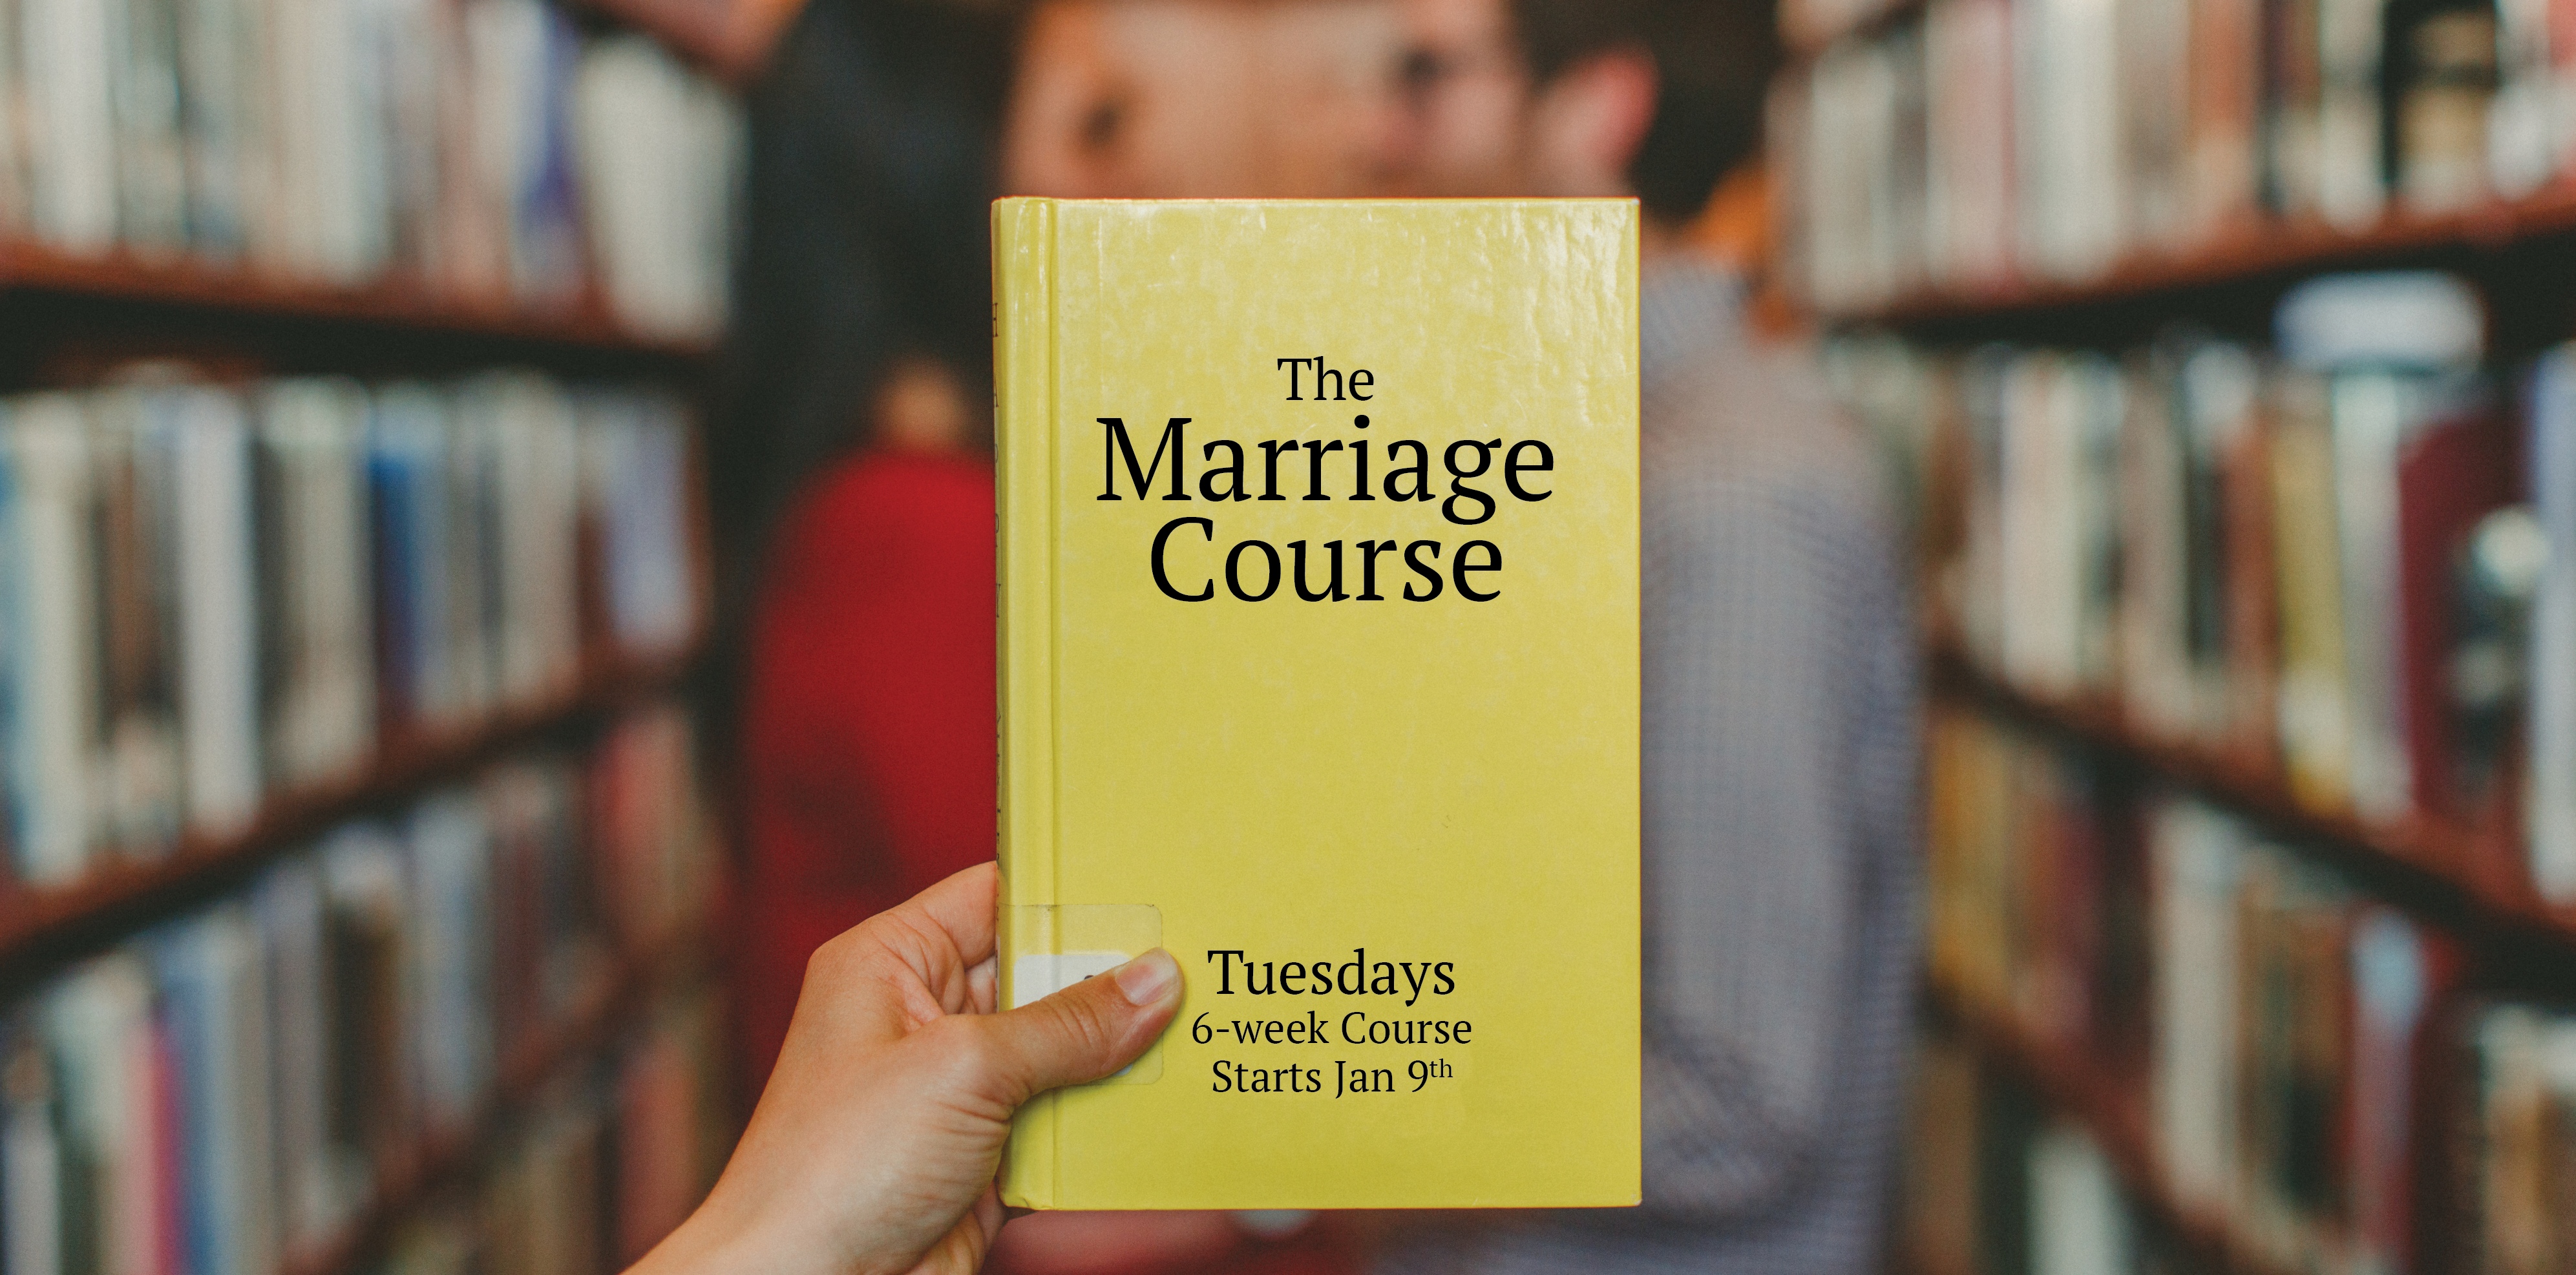 Fam the marriage course sidescreen 2018 01 copy